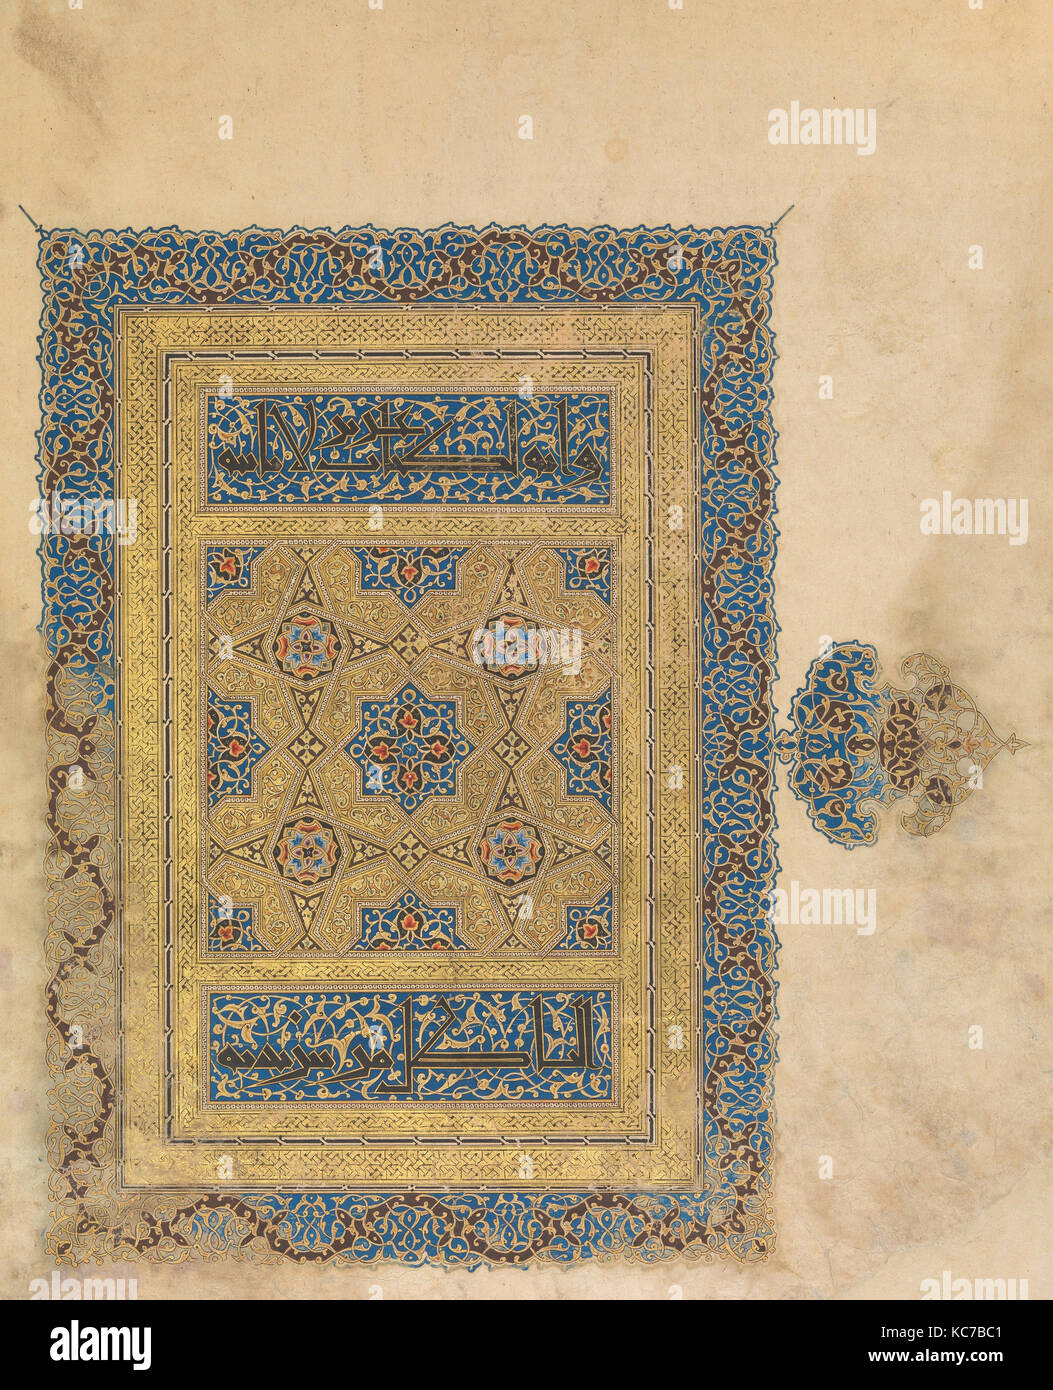 Opening Folio of the 26th Volume of the  'Anonymous Baghdad Qur'an', A.H. 706/ A.D 1306–7 - Stock Image